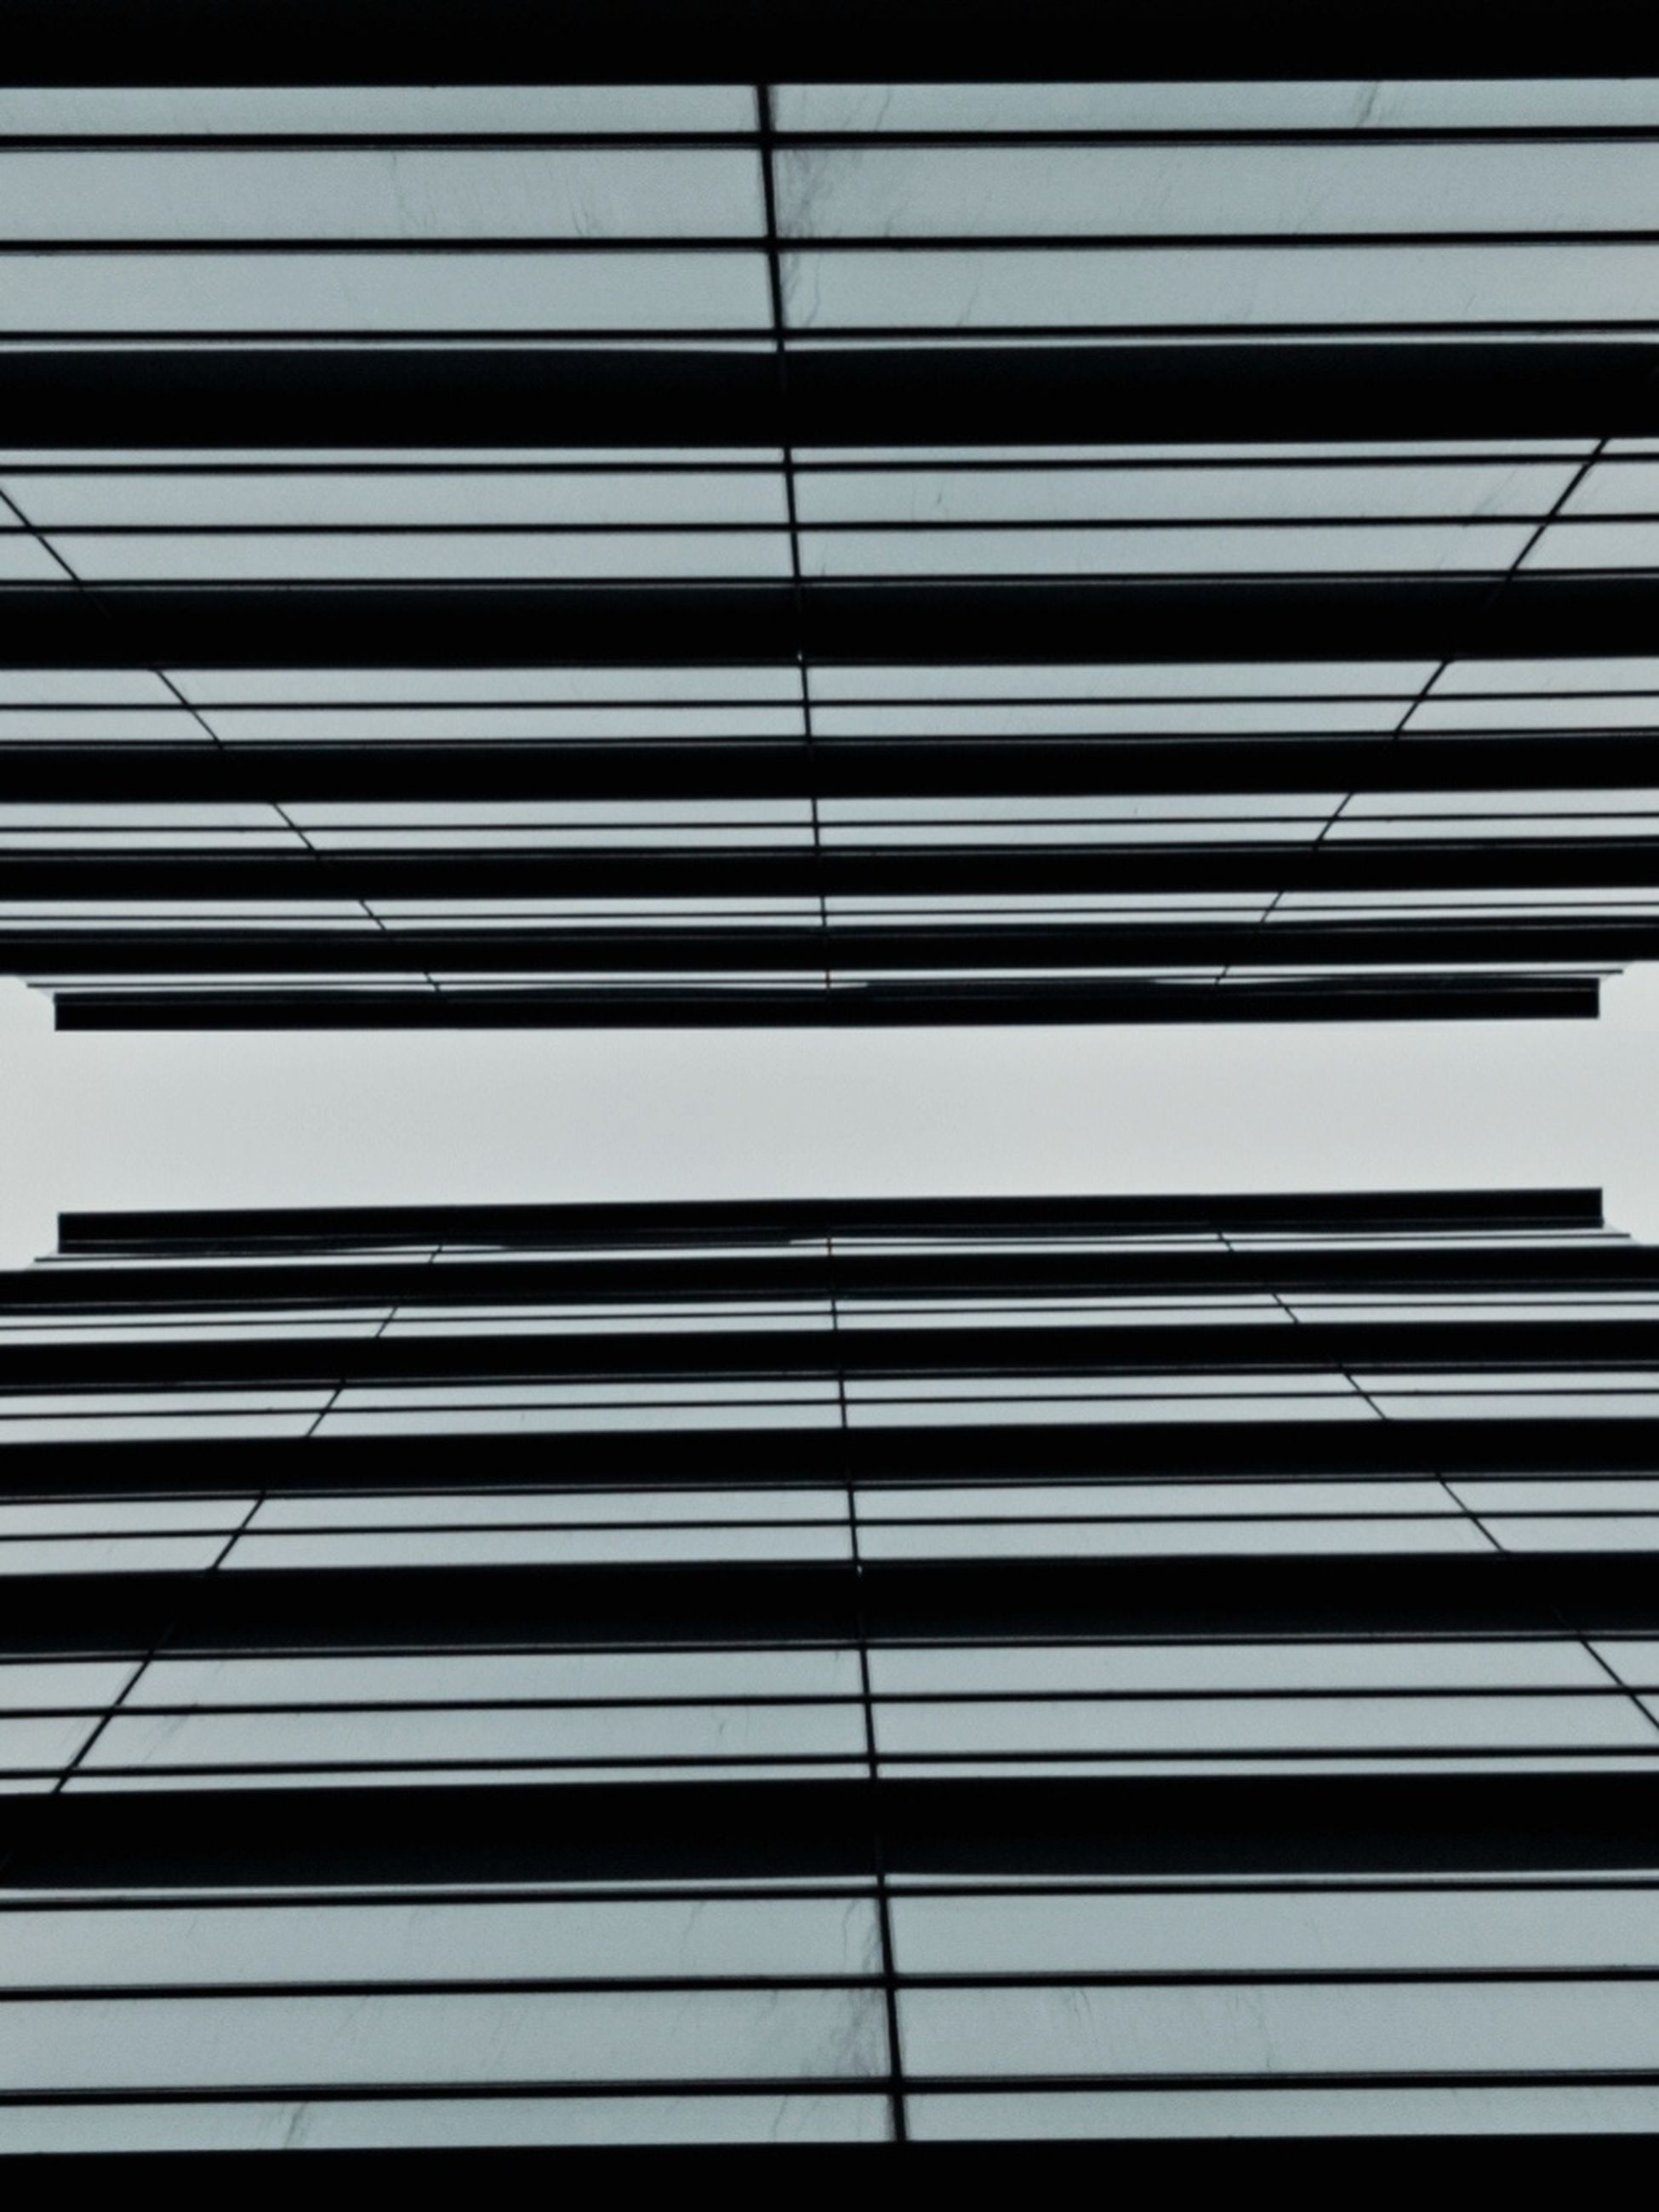 pattern, full frame, line, no people, backgrounds, black and white, black, architecture, built structure, monochrome, repetition, interior design, metal, monochrome photography, indoors, striped, day, in a row, font, close-up, window covering, low angle view, blinds, wall - building feature